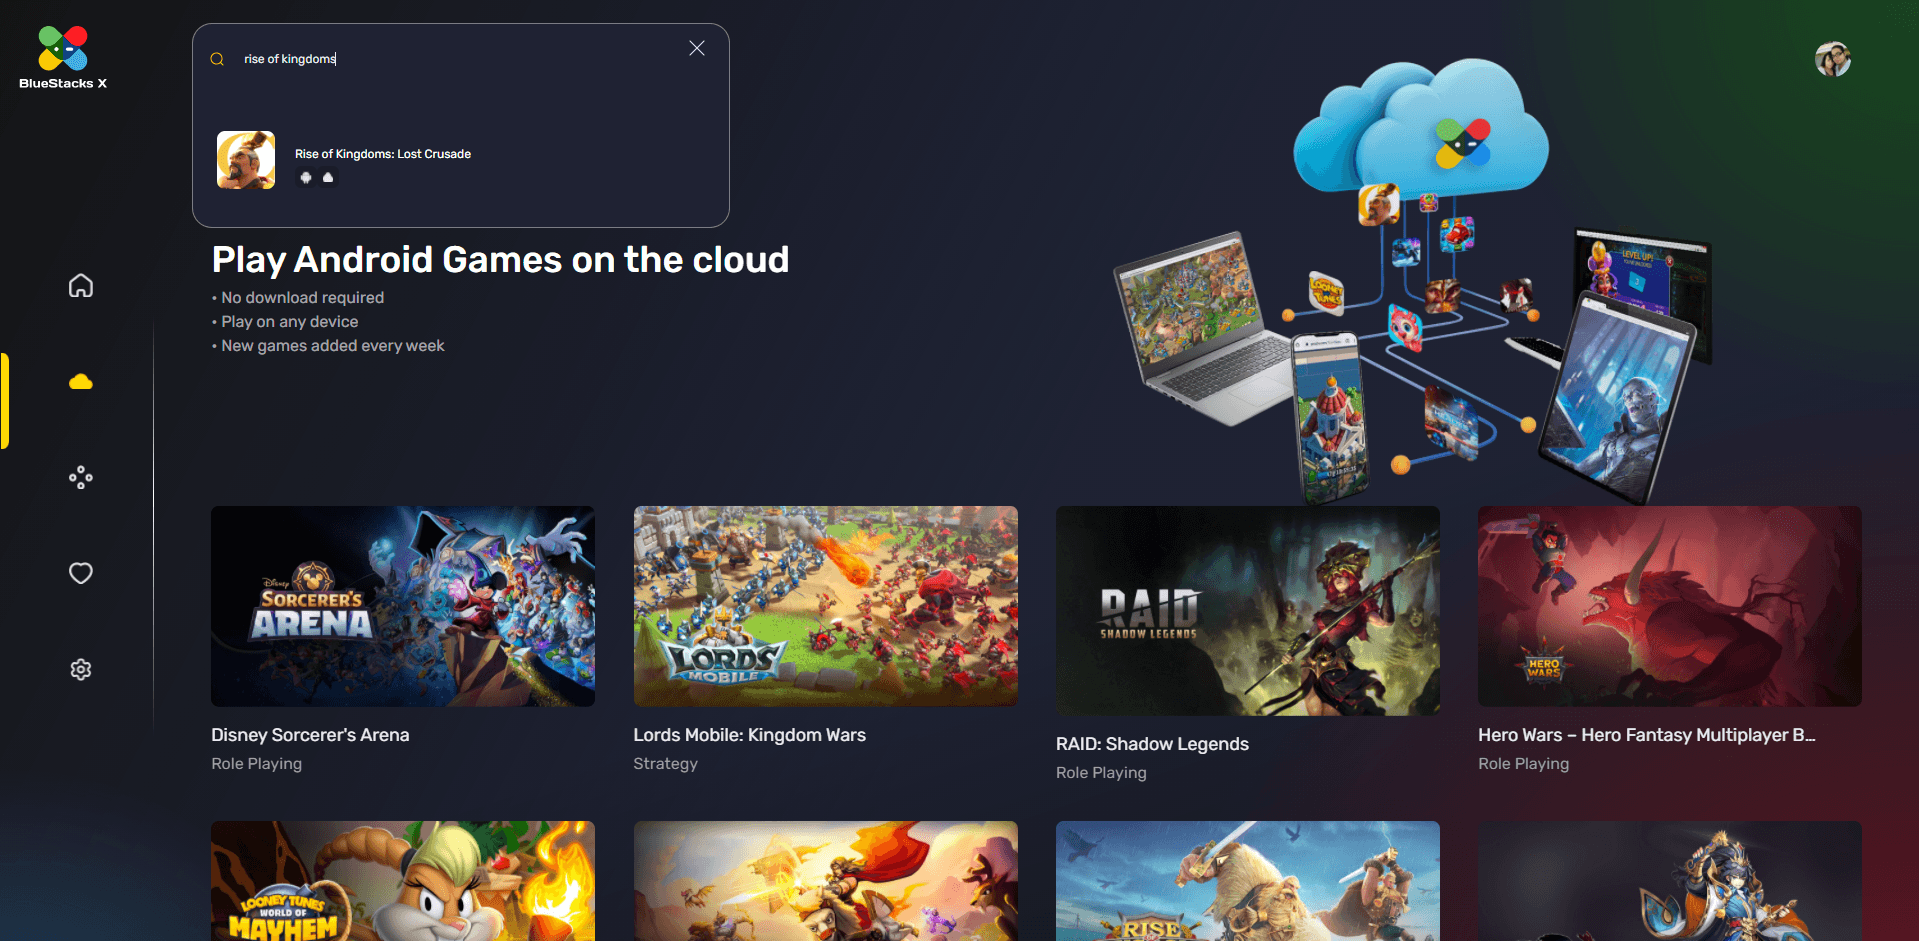 How to Play Rise of Kingdoms on the Cloud with BlueStacks X